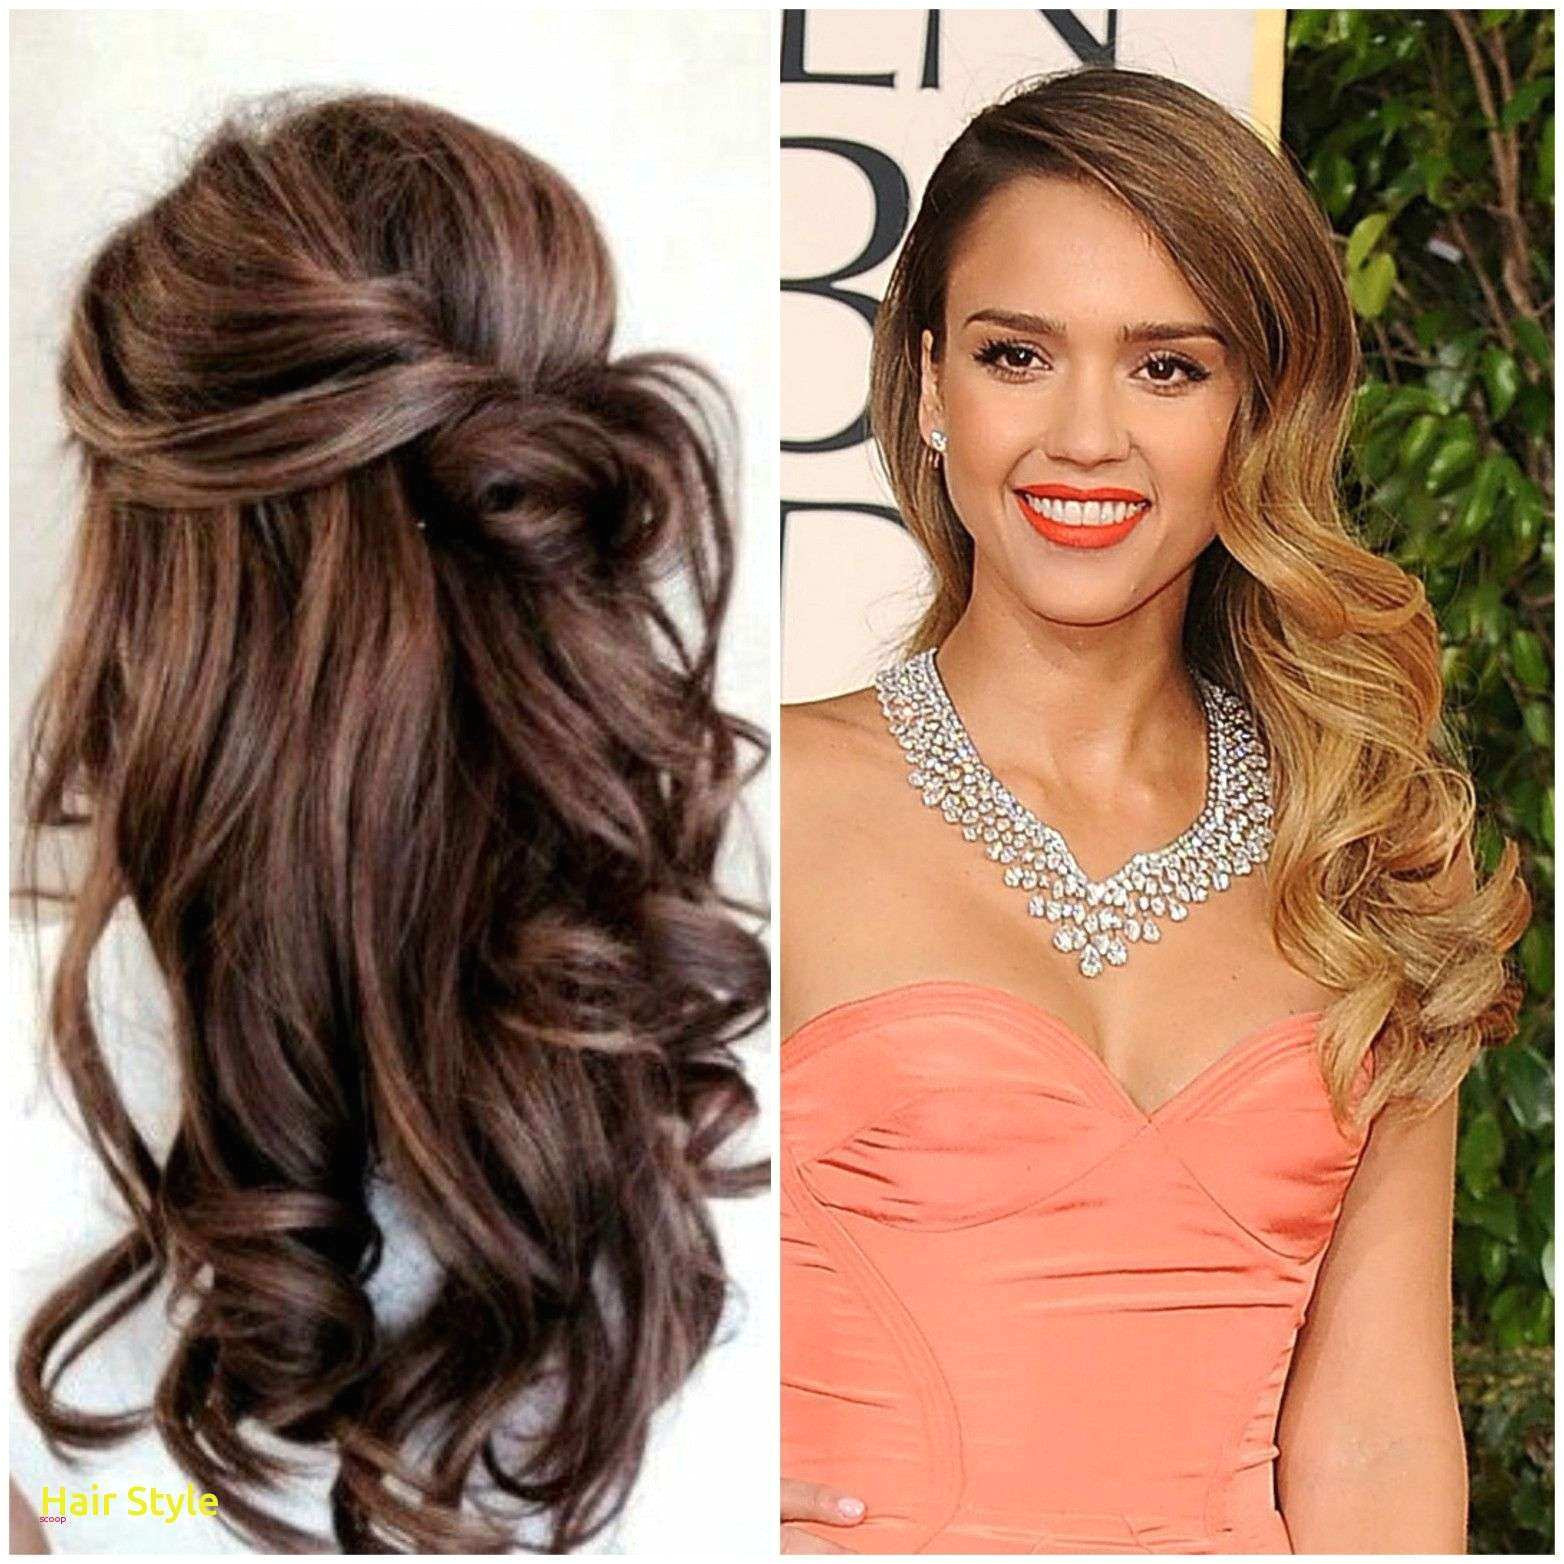 Curls Hairstyles for Long Hair for Wedding Wavy Girl Hairstyles New Very Curly Hairstyles Fresh Curly Hair 0d